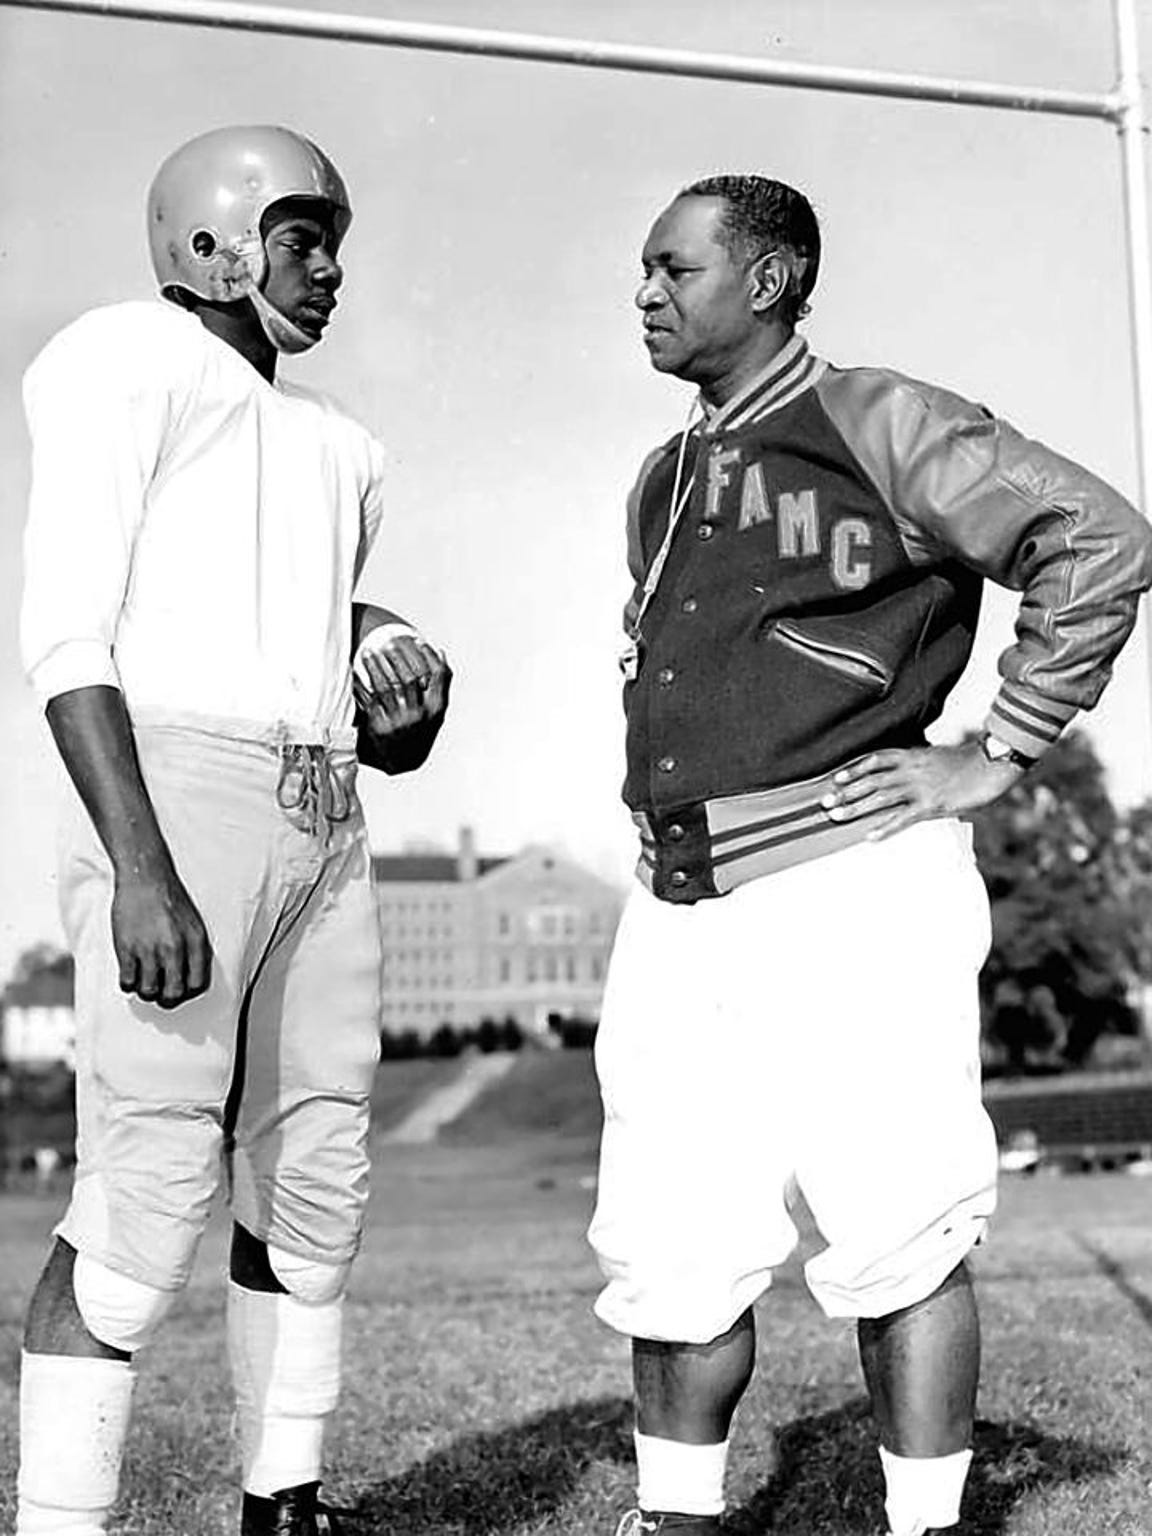 Willie Galimore and Football Coach Jake Gaither.